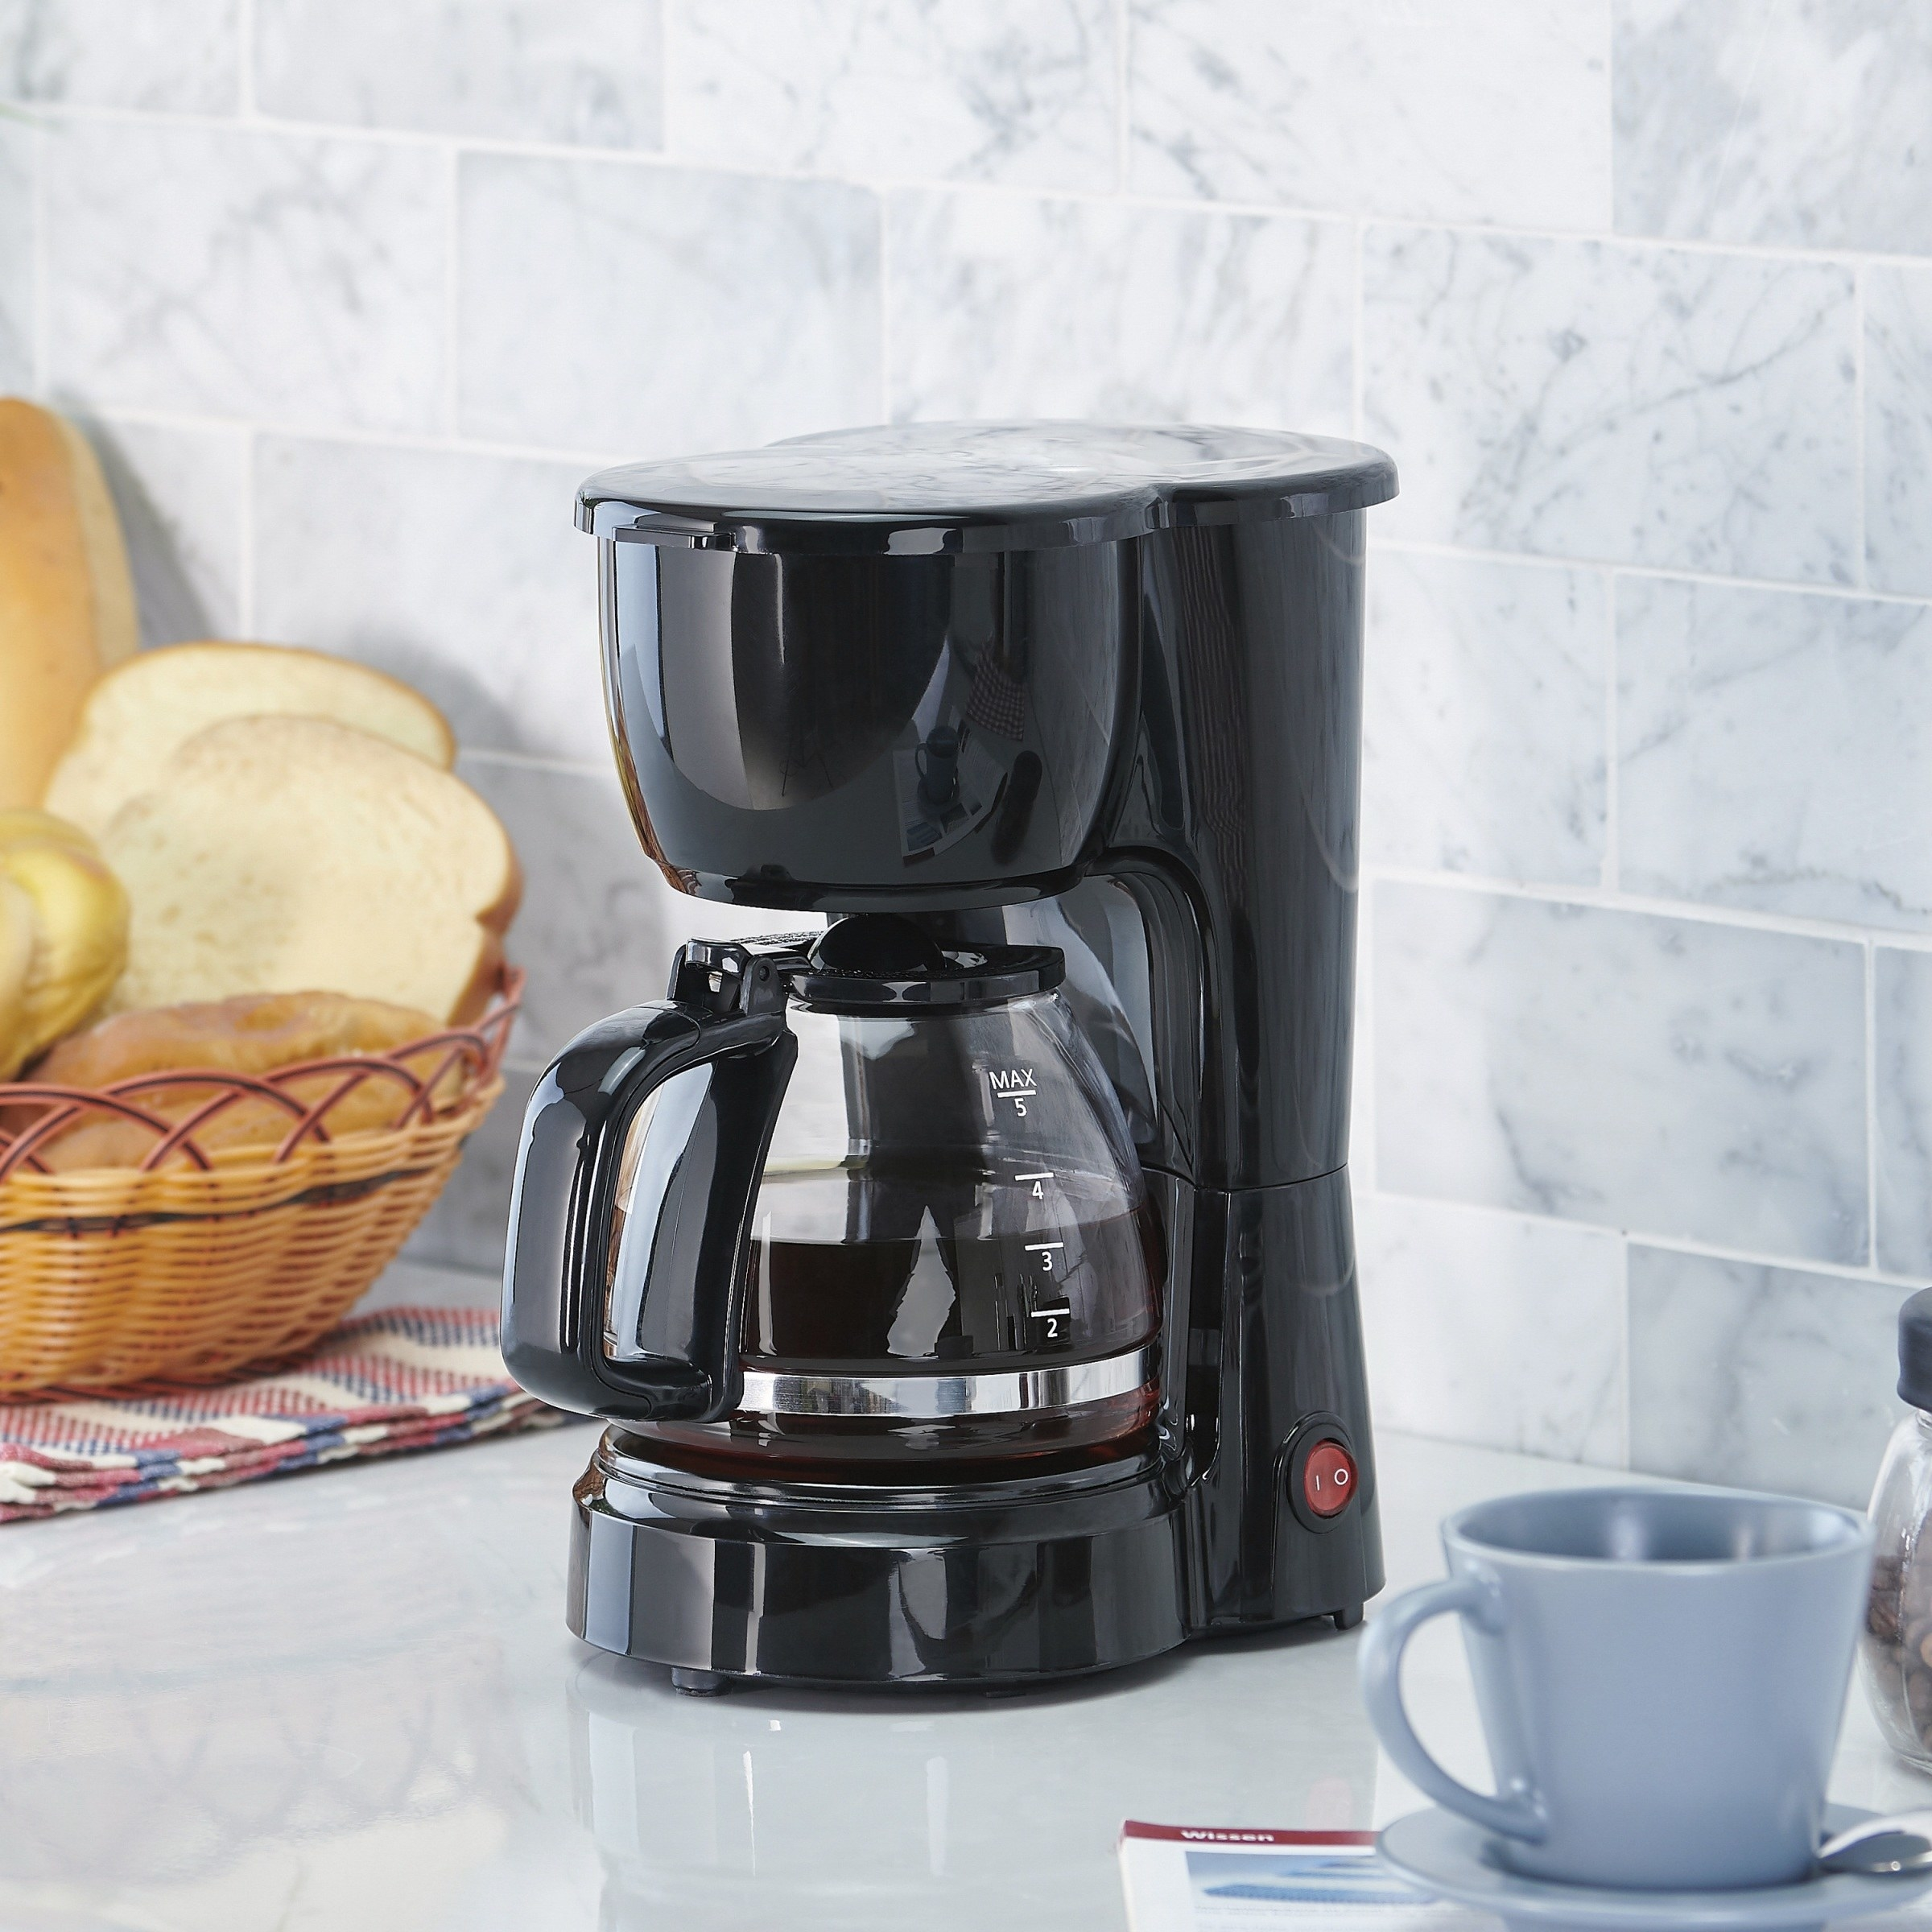 black coffee maker on a counter